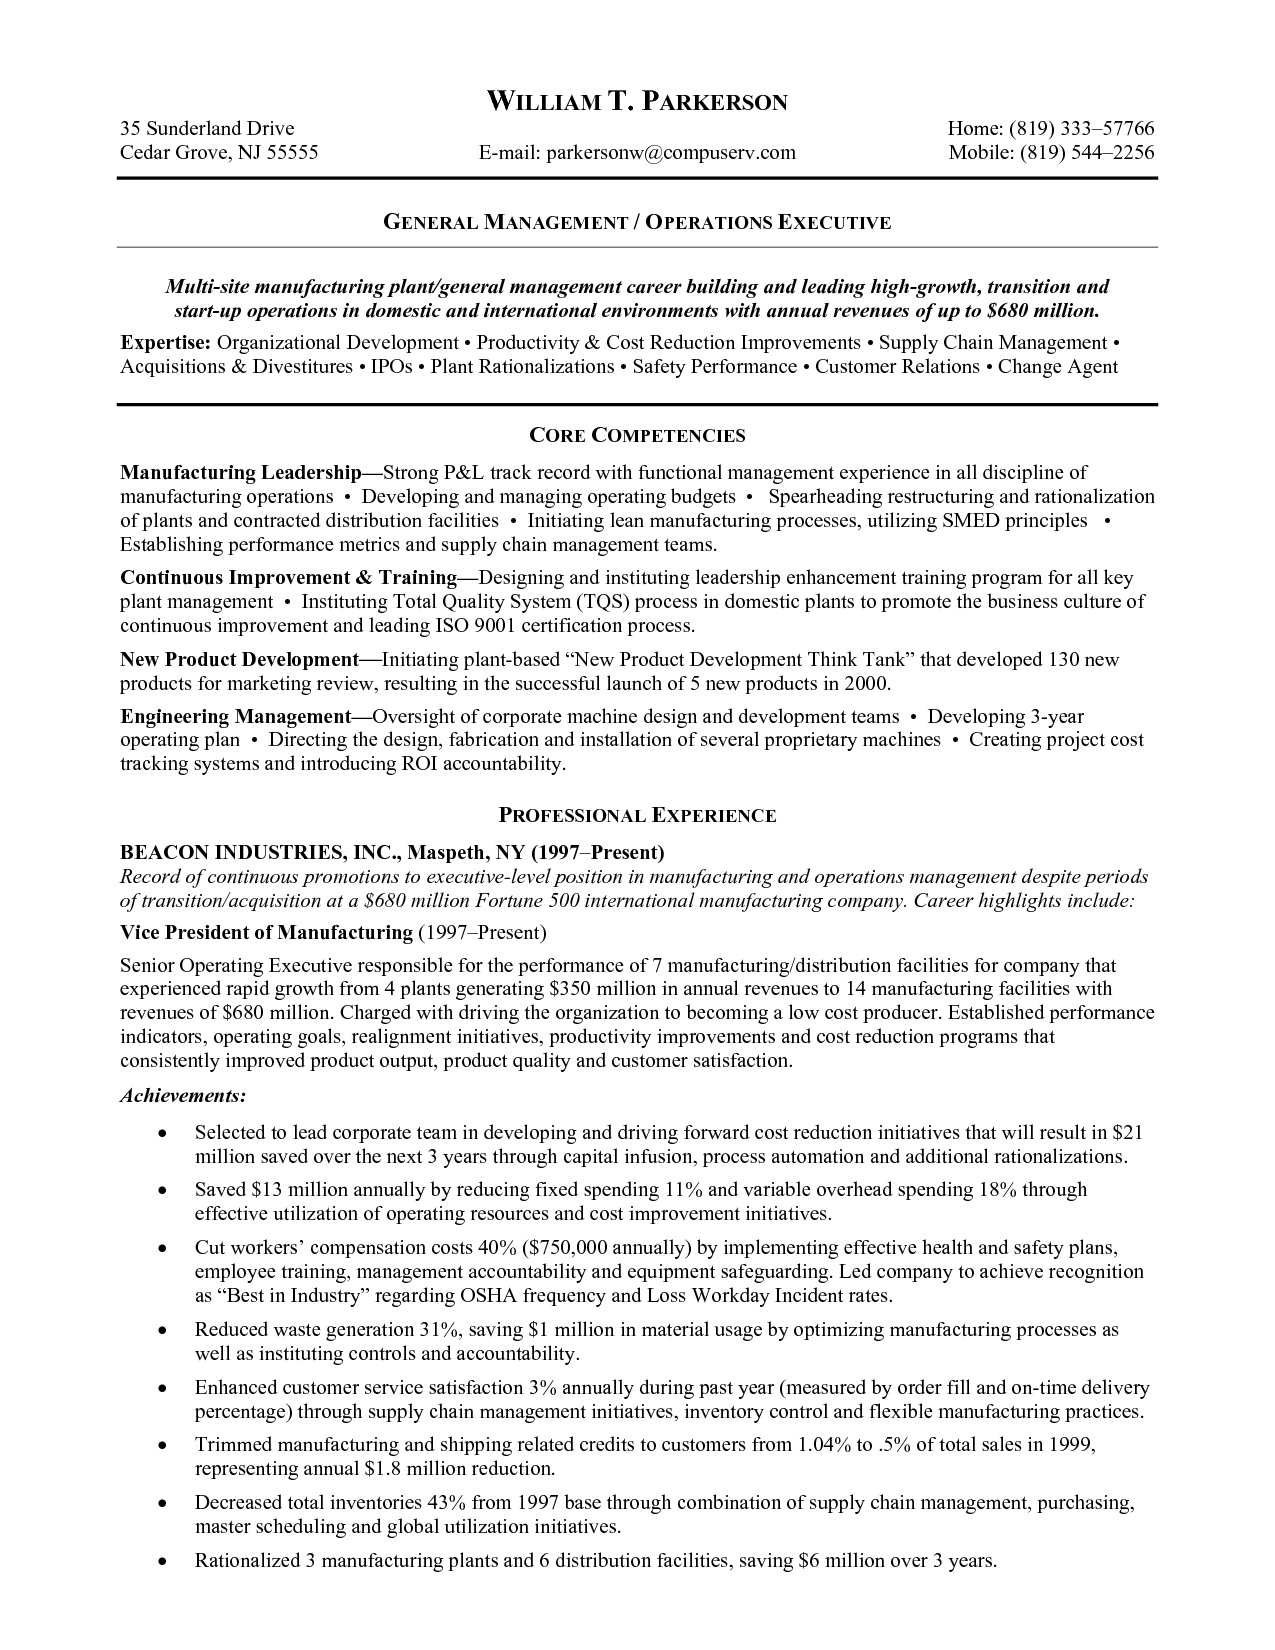 Career Objective On Resume Template General Manufacturing Resume Samples Objective Examples Free Edit